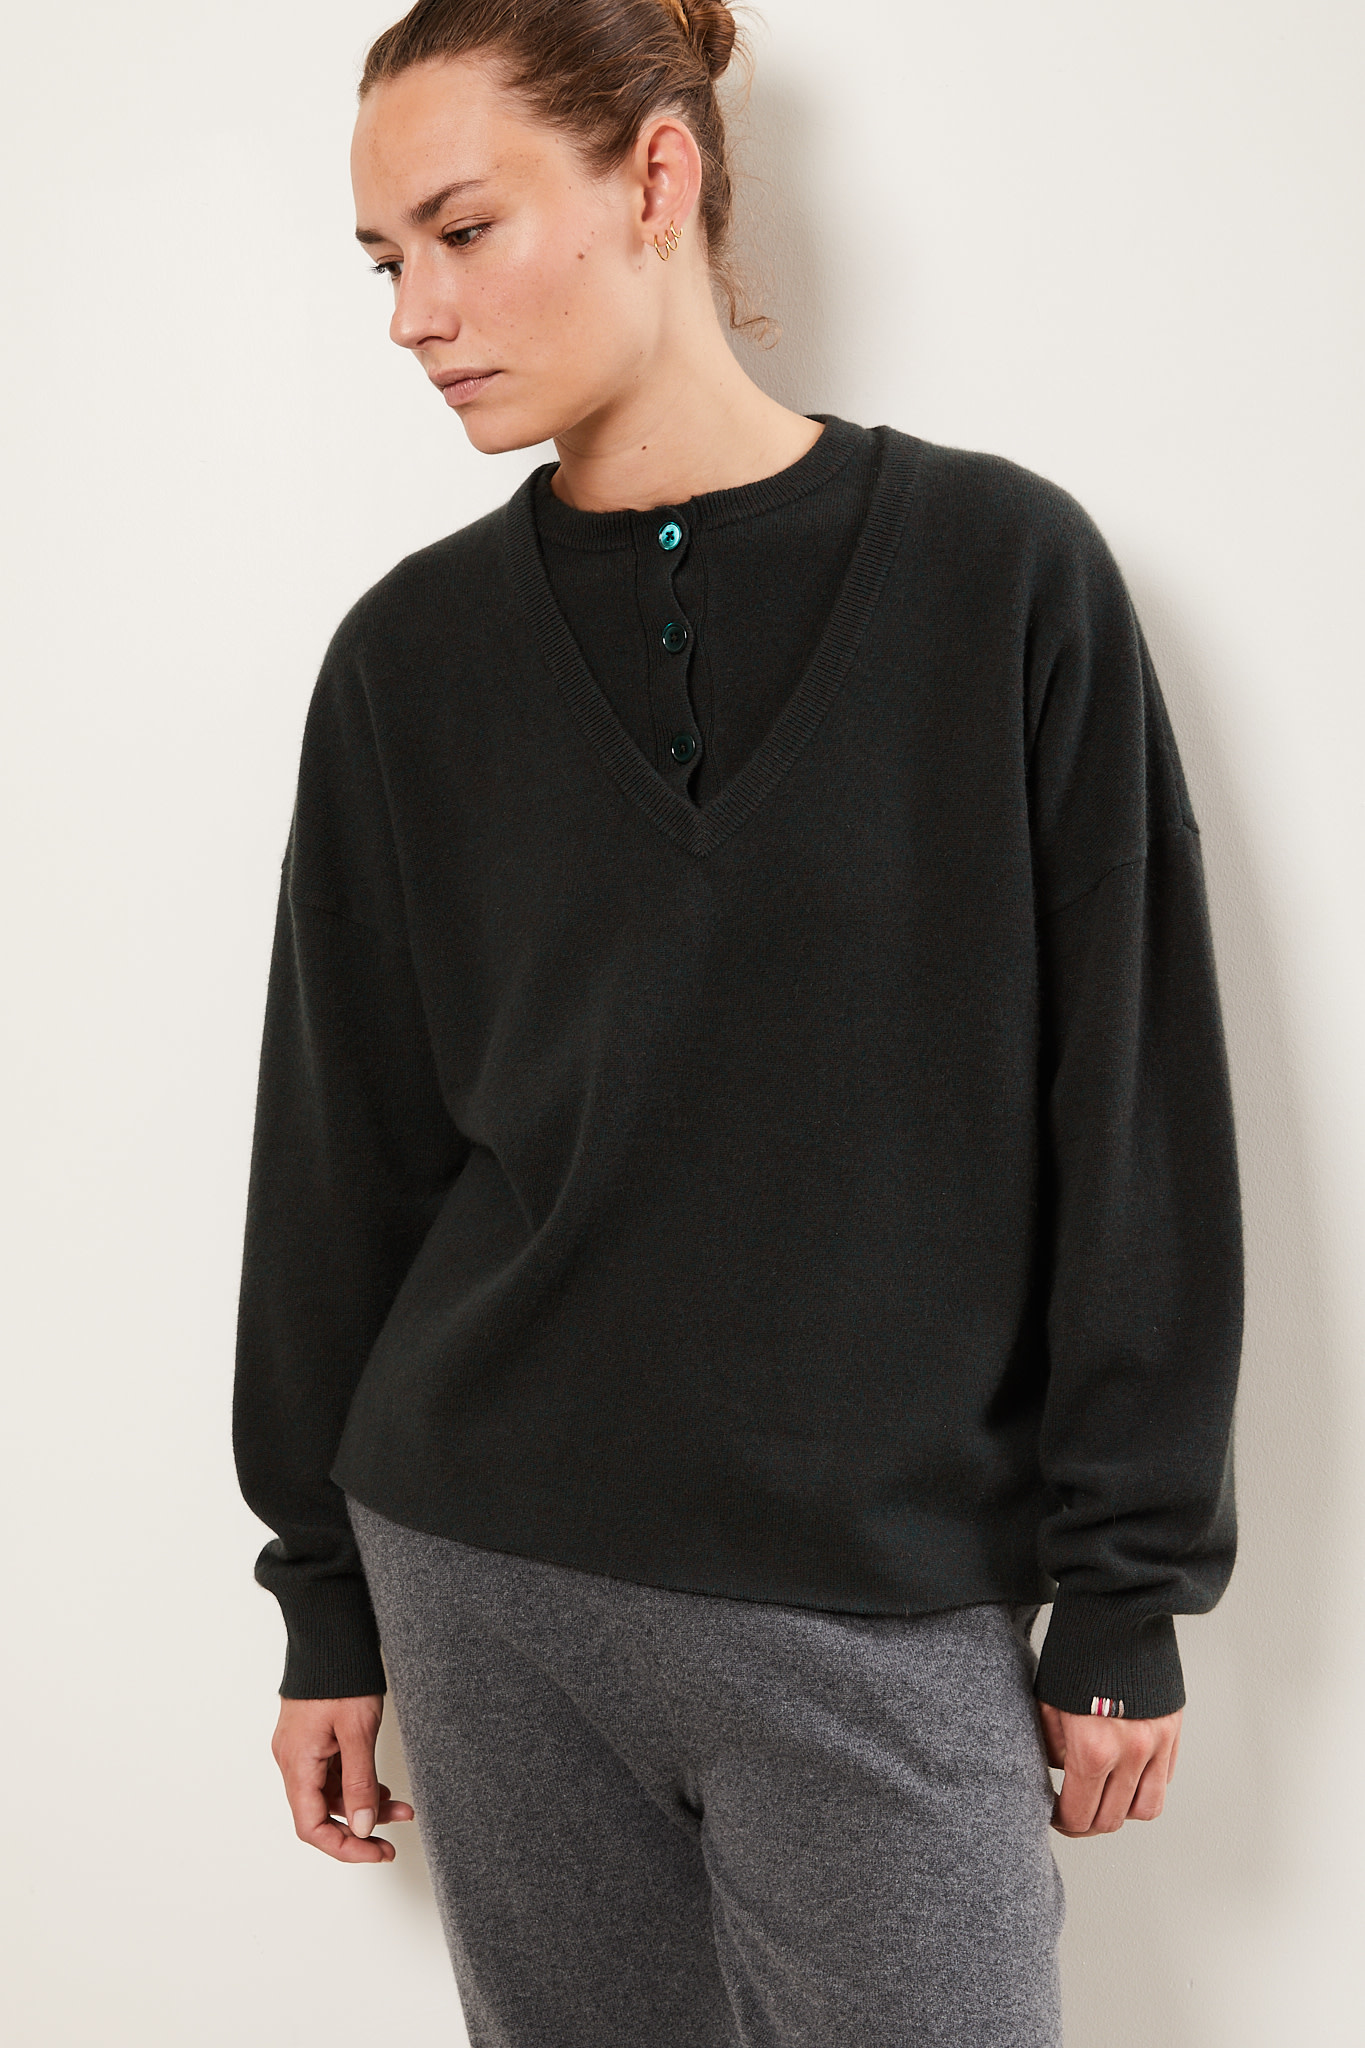 extreme cashmere - Clac cropped sweater